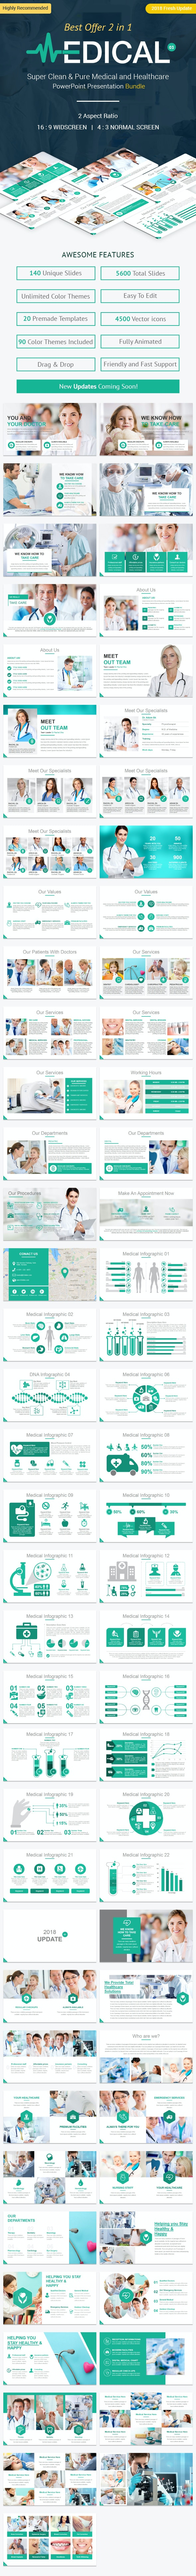 2 In 1 Medical and Healthcare PowerPoint Presentation Bundle - Business PowerPoint Templates